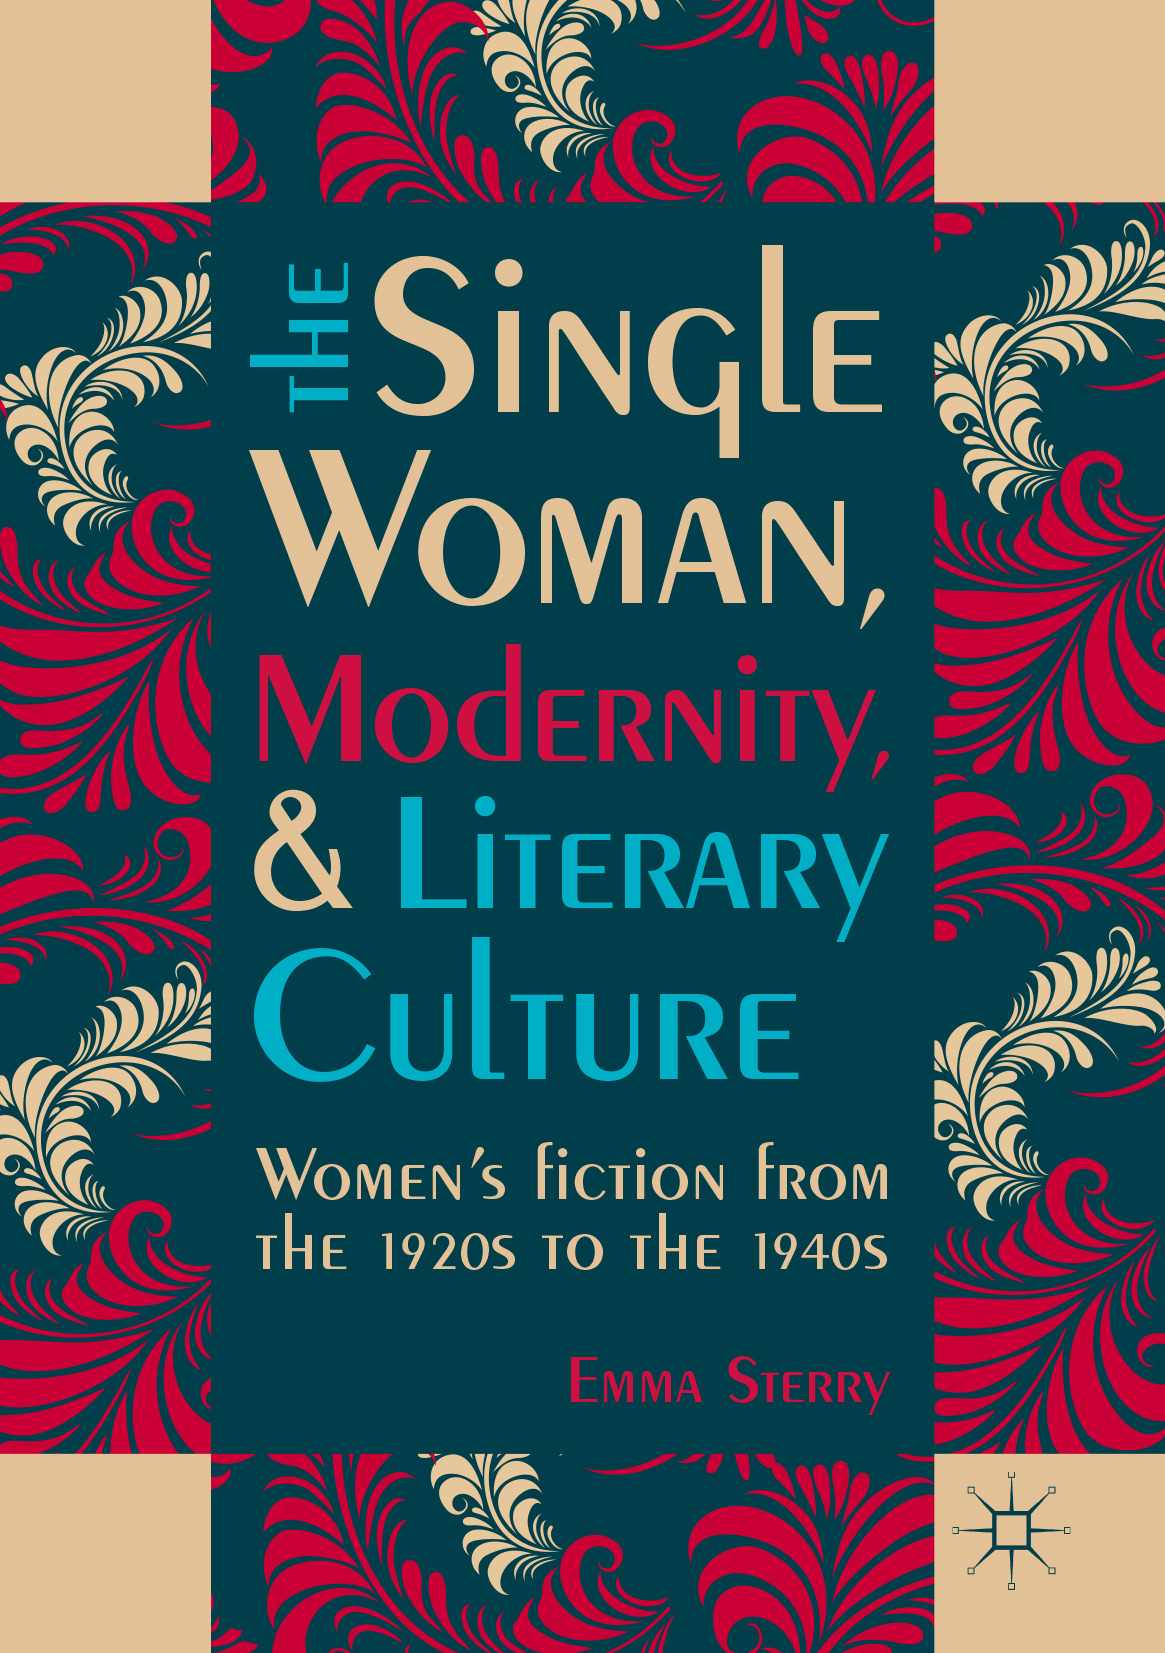 Sterry, Emma - The Single Woman, Modernity, and Literary Culture, ebook